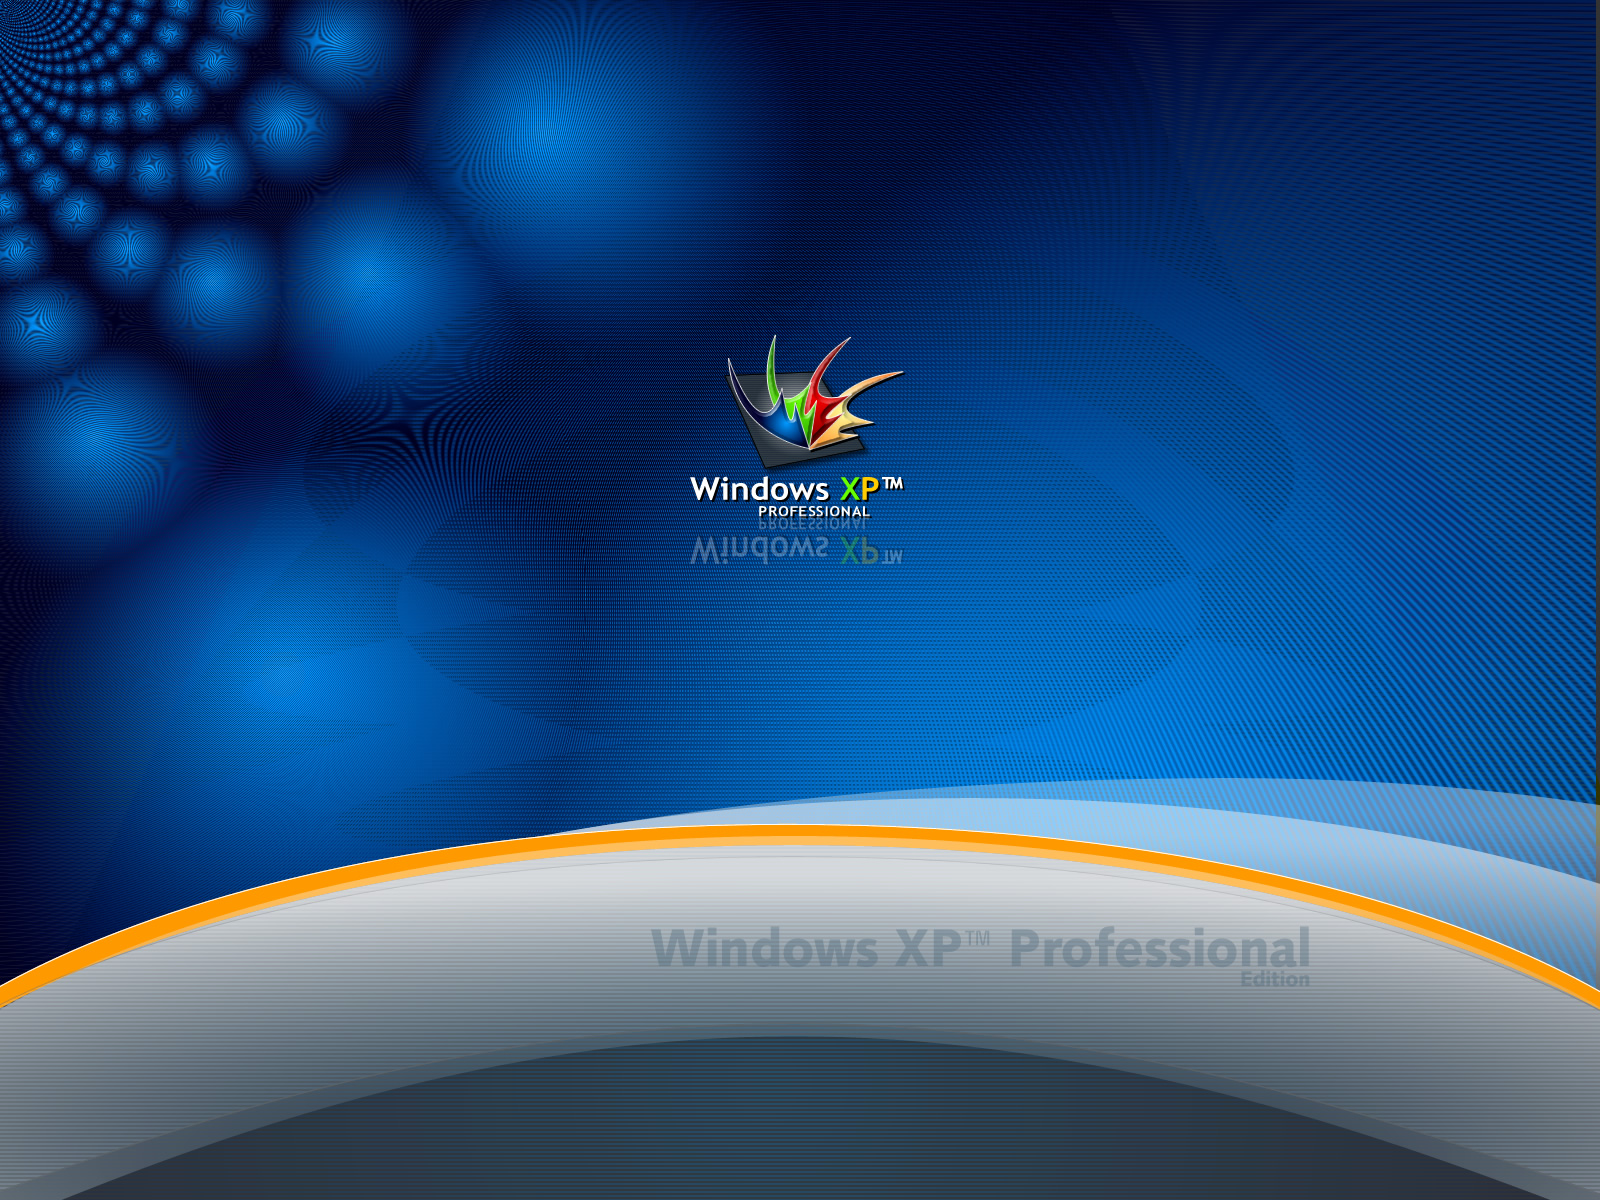 windows xp wallpaper and background image | 1600x1200 | id:51981